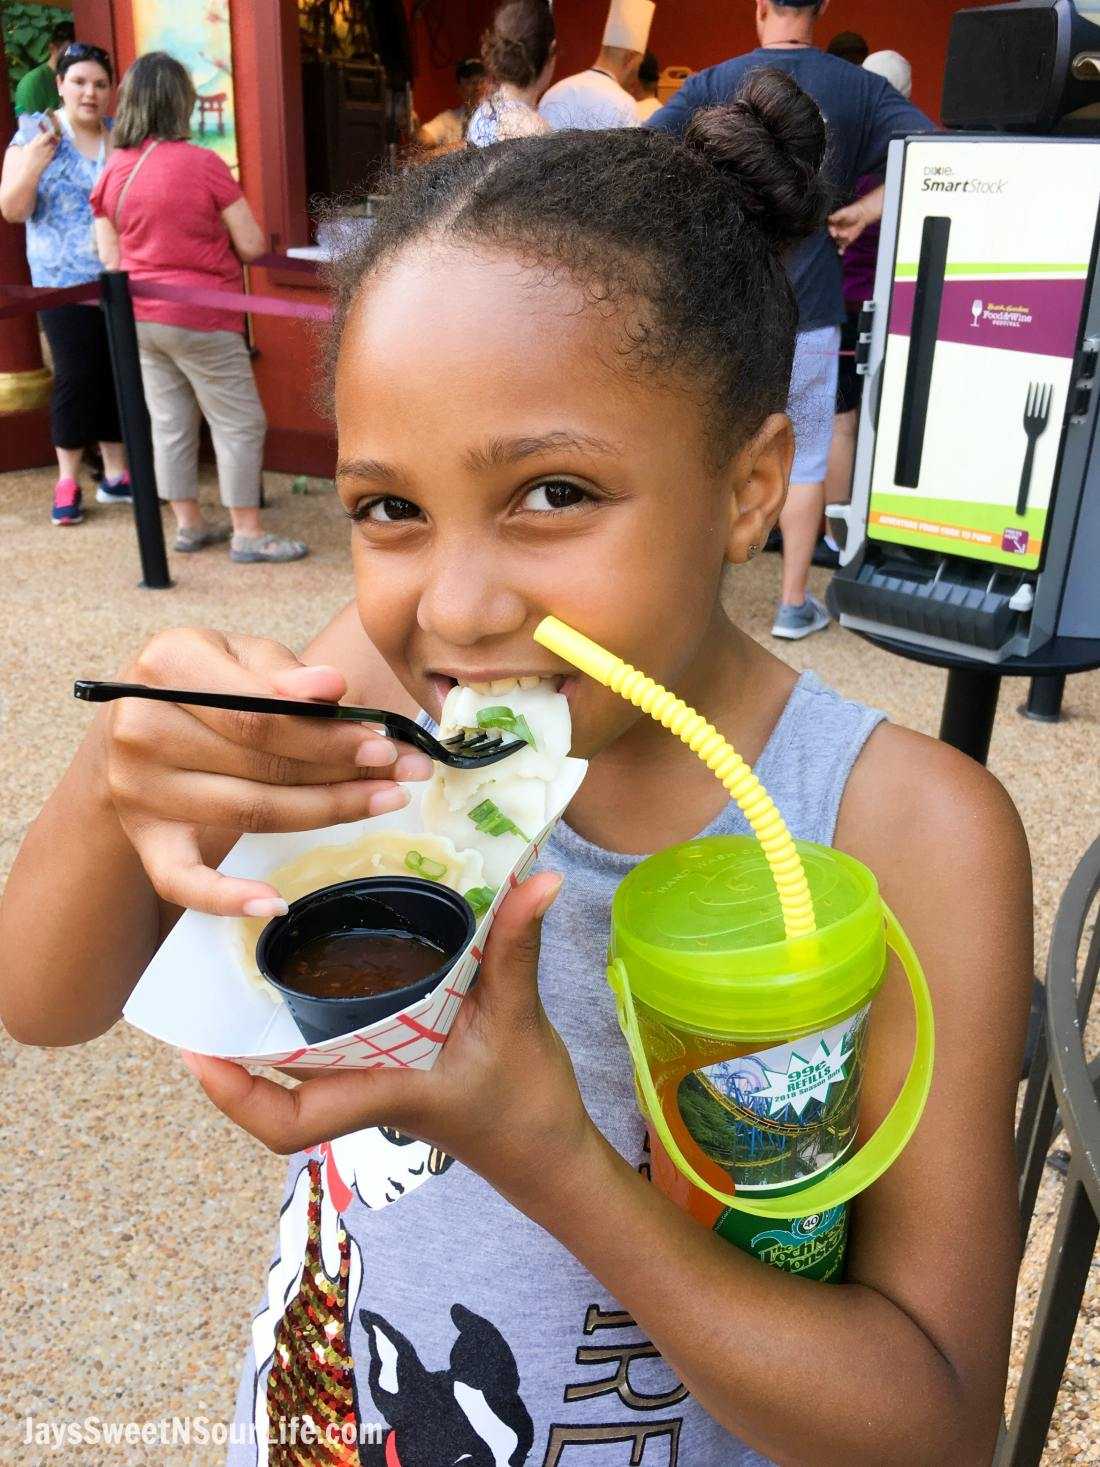 Girl eating dumpling Japan 2018 Busch Gardens Food and Wine Festival. Food & Wine Festival is from 11 am to close every Friday, Saturday and Sunday, May 25 - July 1.